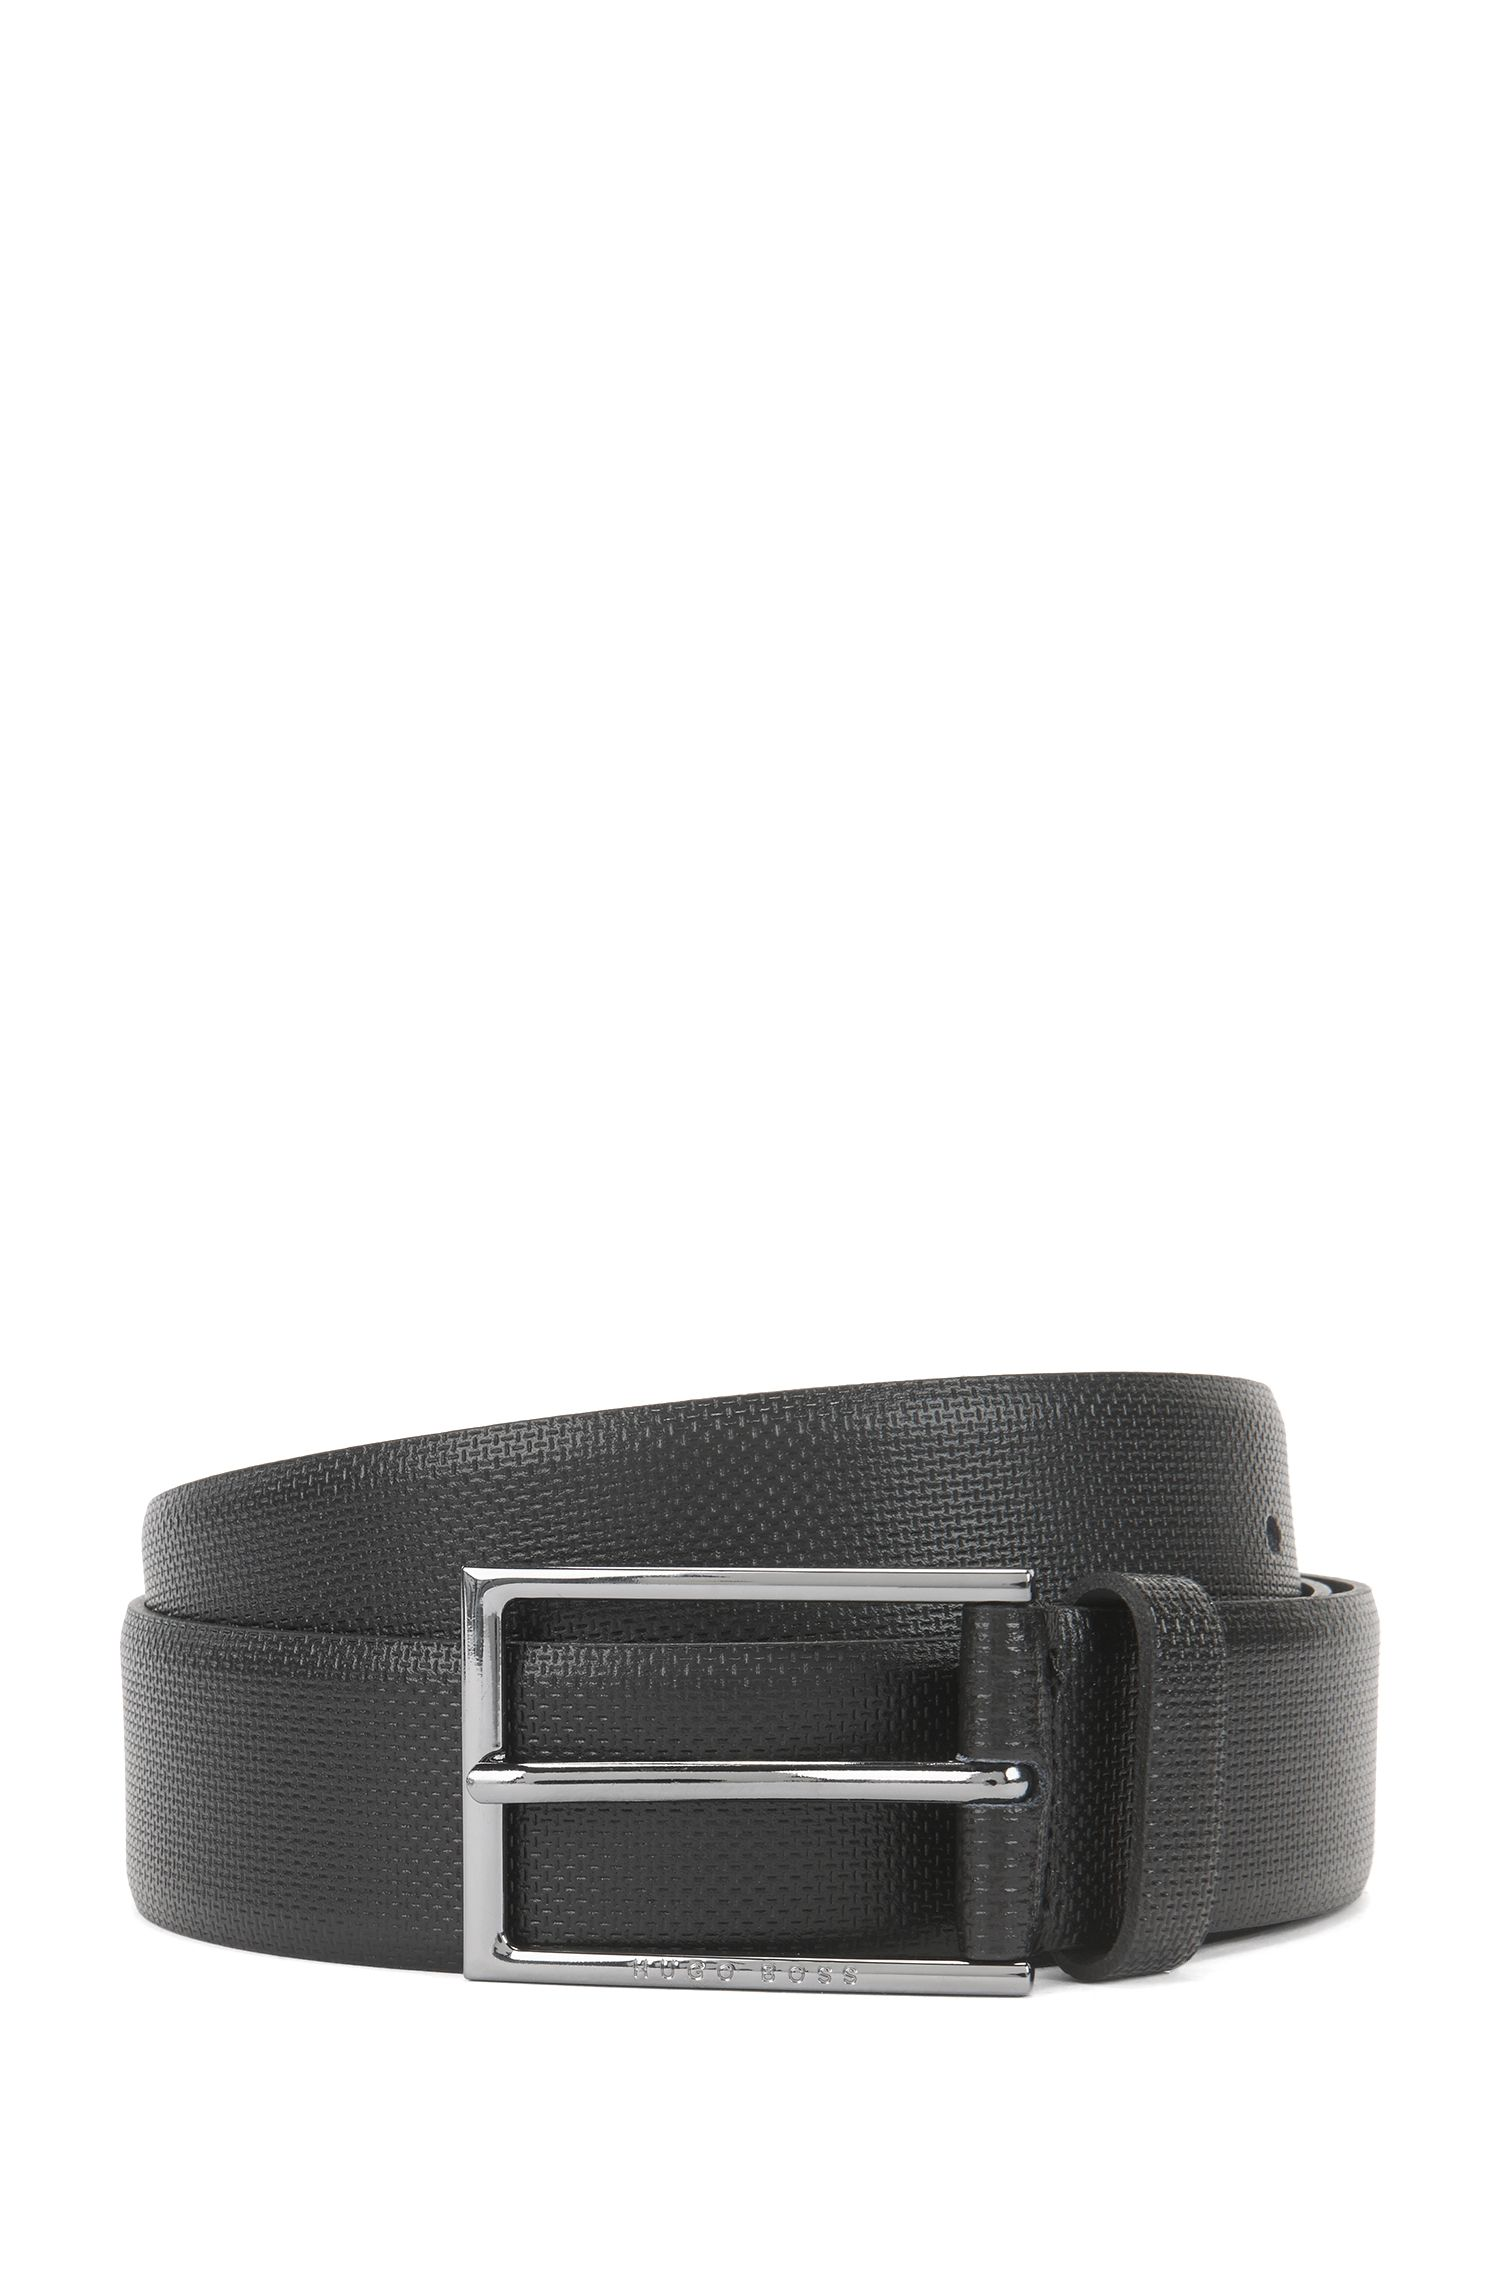 'Carmello S' | Leather Printed Belt